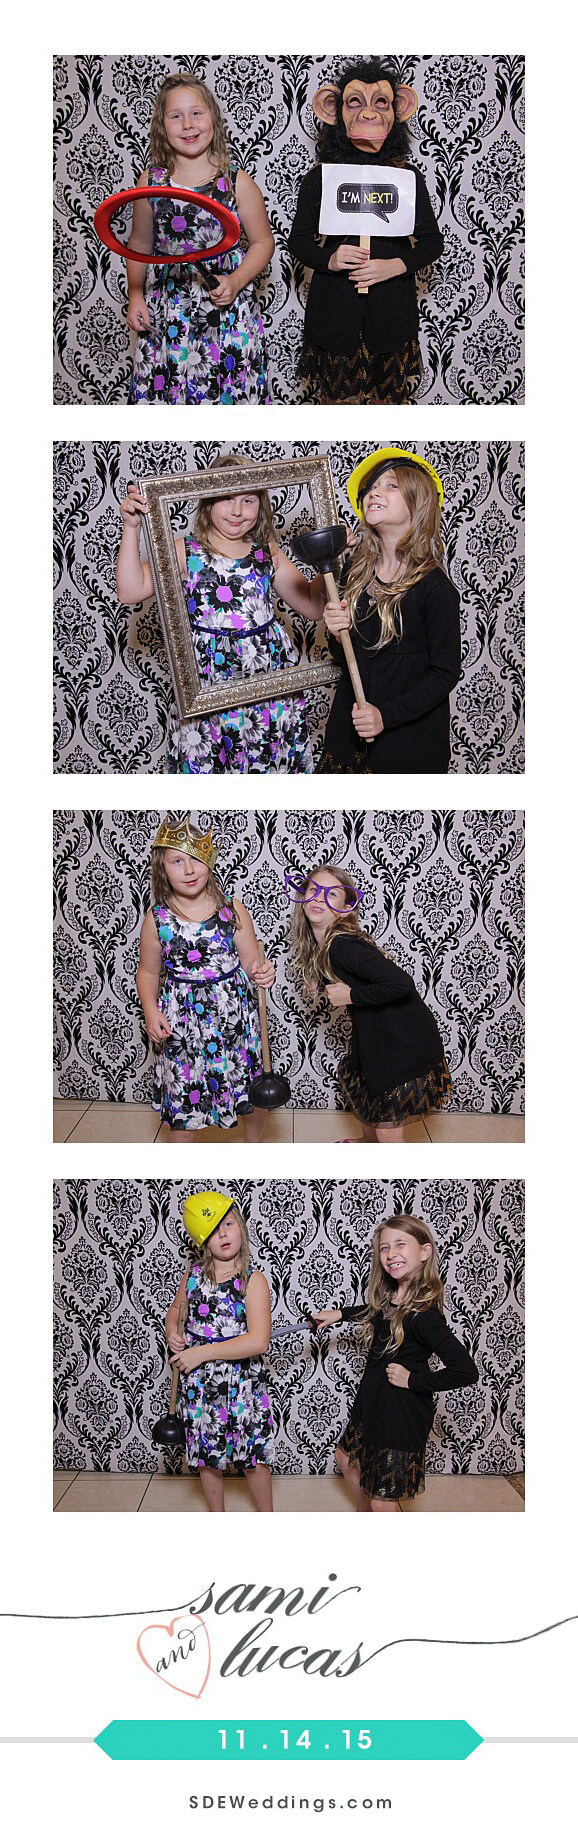 Toronto Paradise Banquet Hall Wedding Photo Booth Rental 11